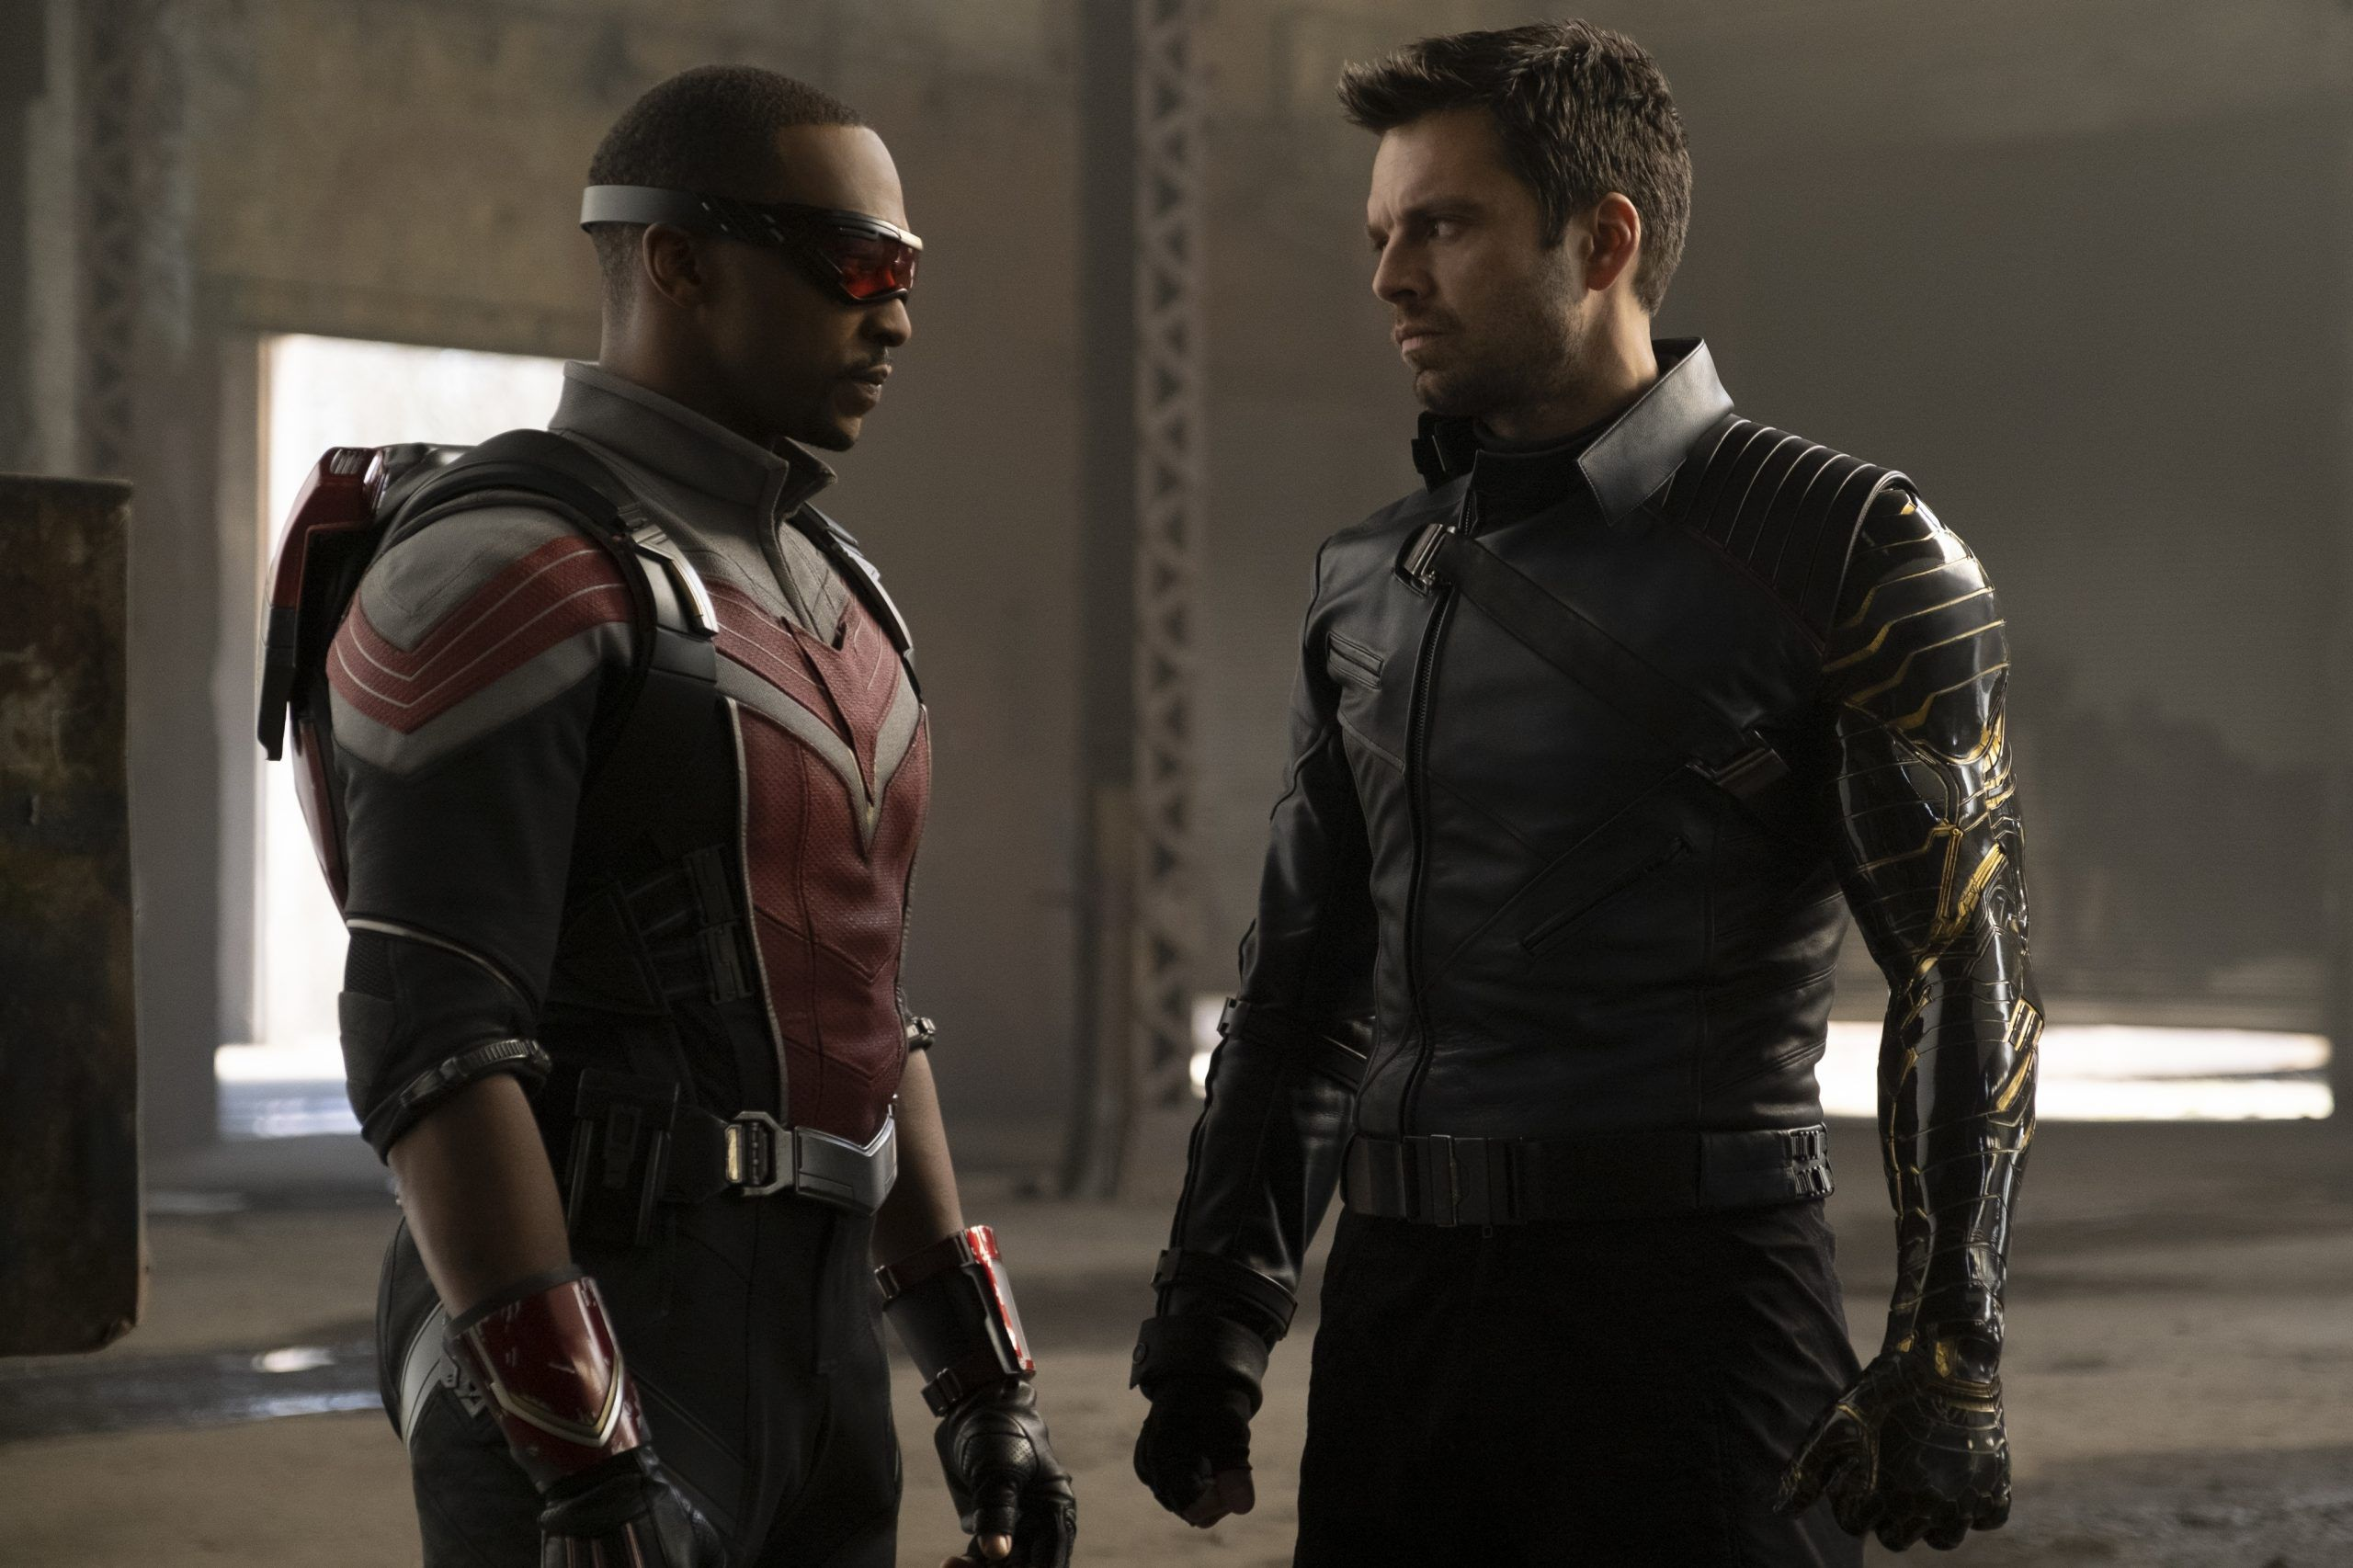 Falcon and the Winter Soldier finale and Kate Winslet's Mare of Easttown top this week's TV must-sees